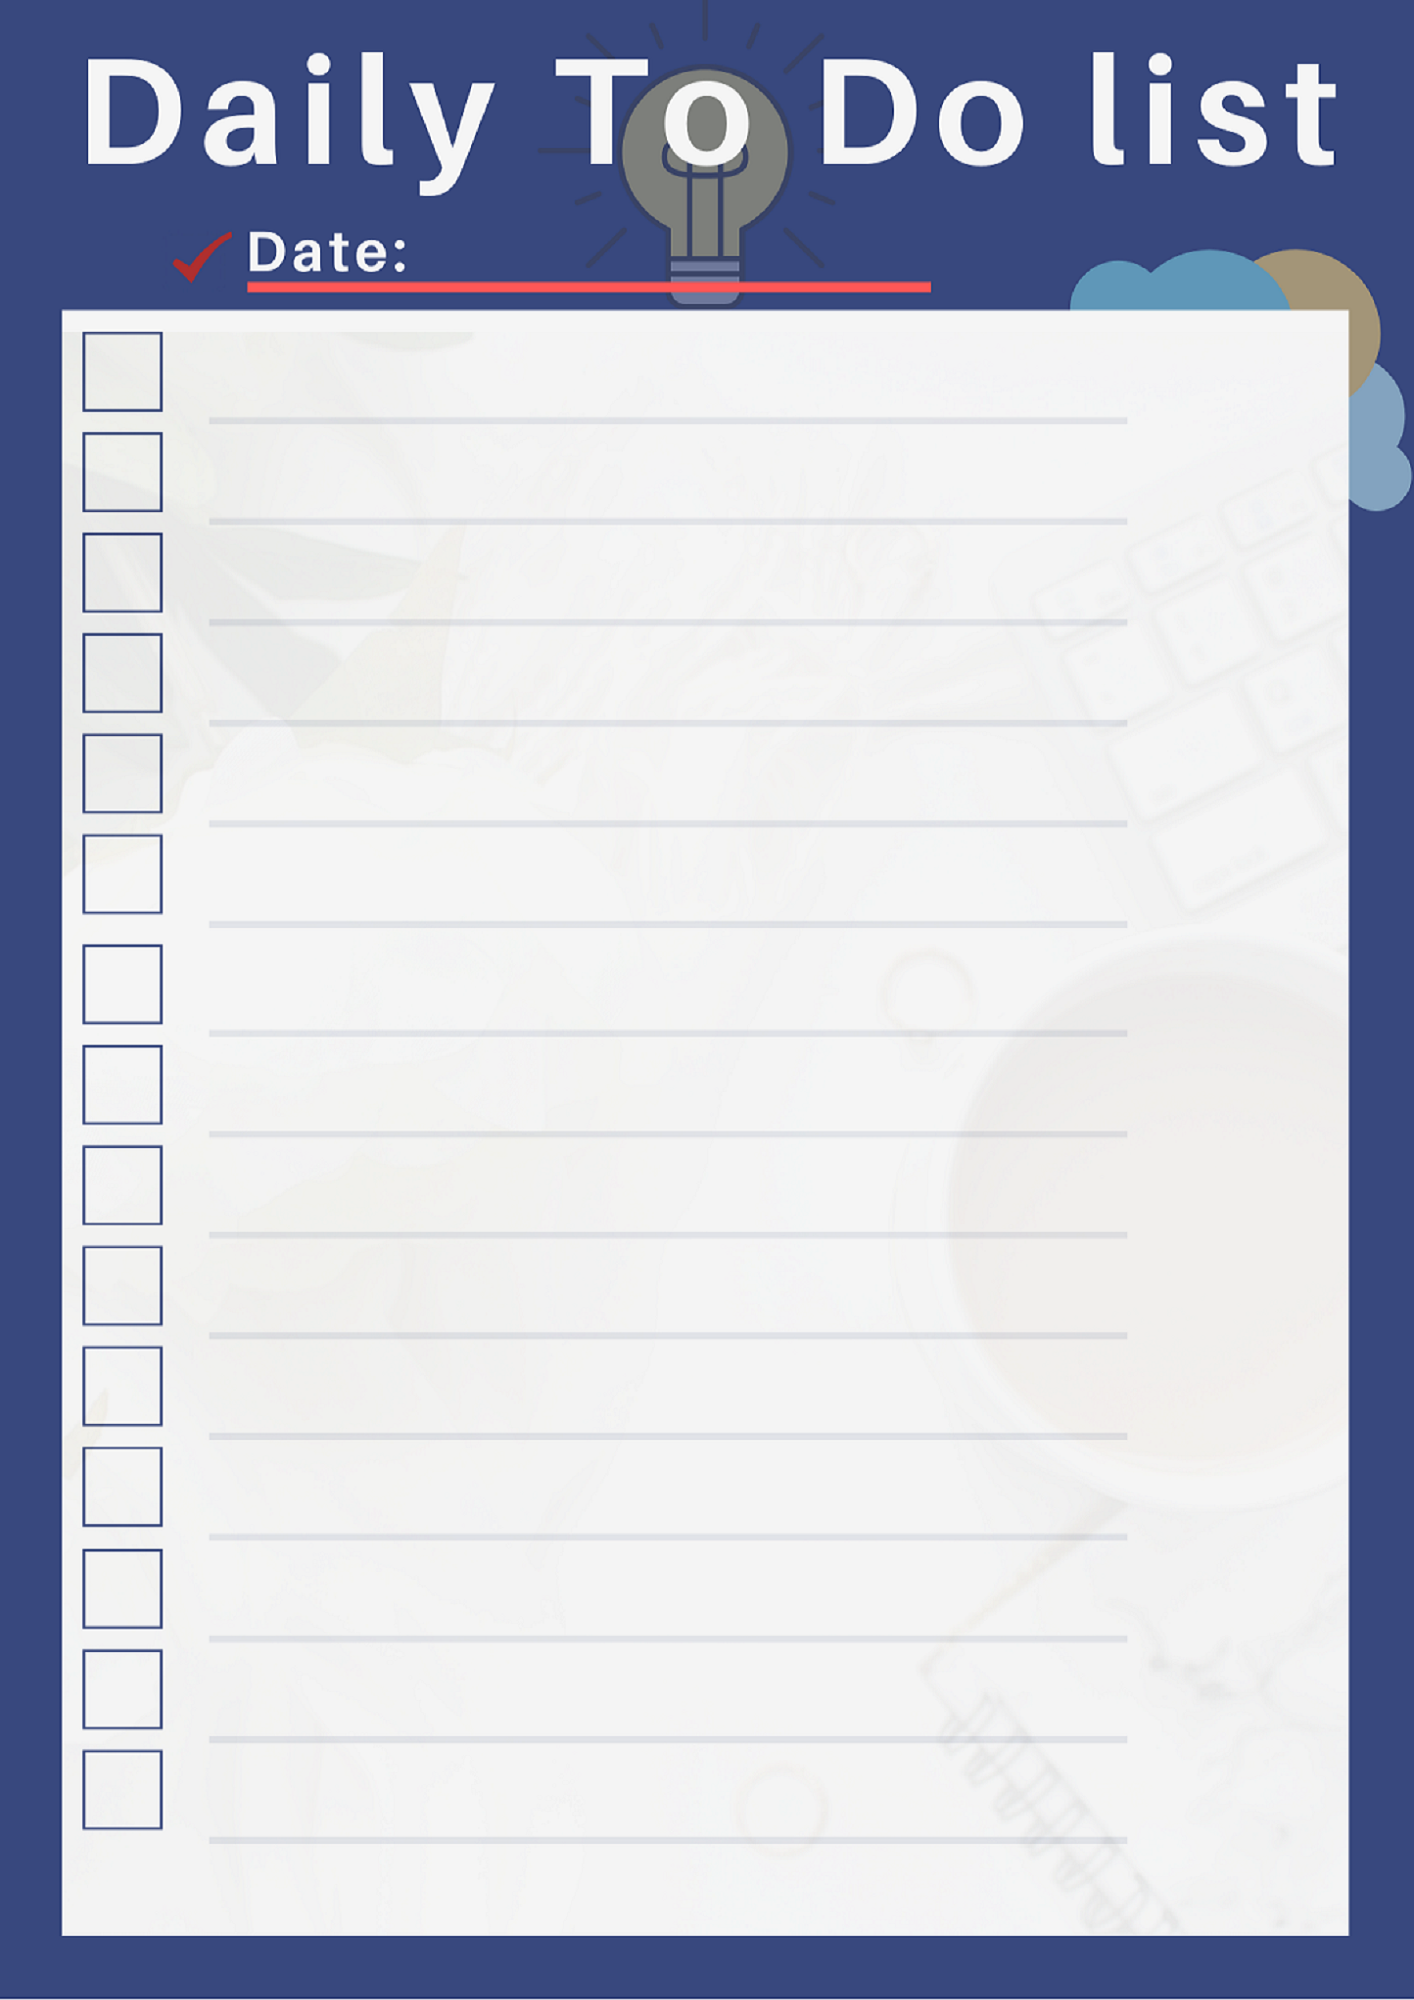 Fillable Daily ToDo List